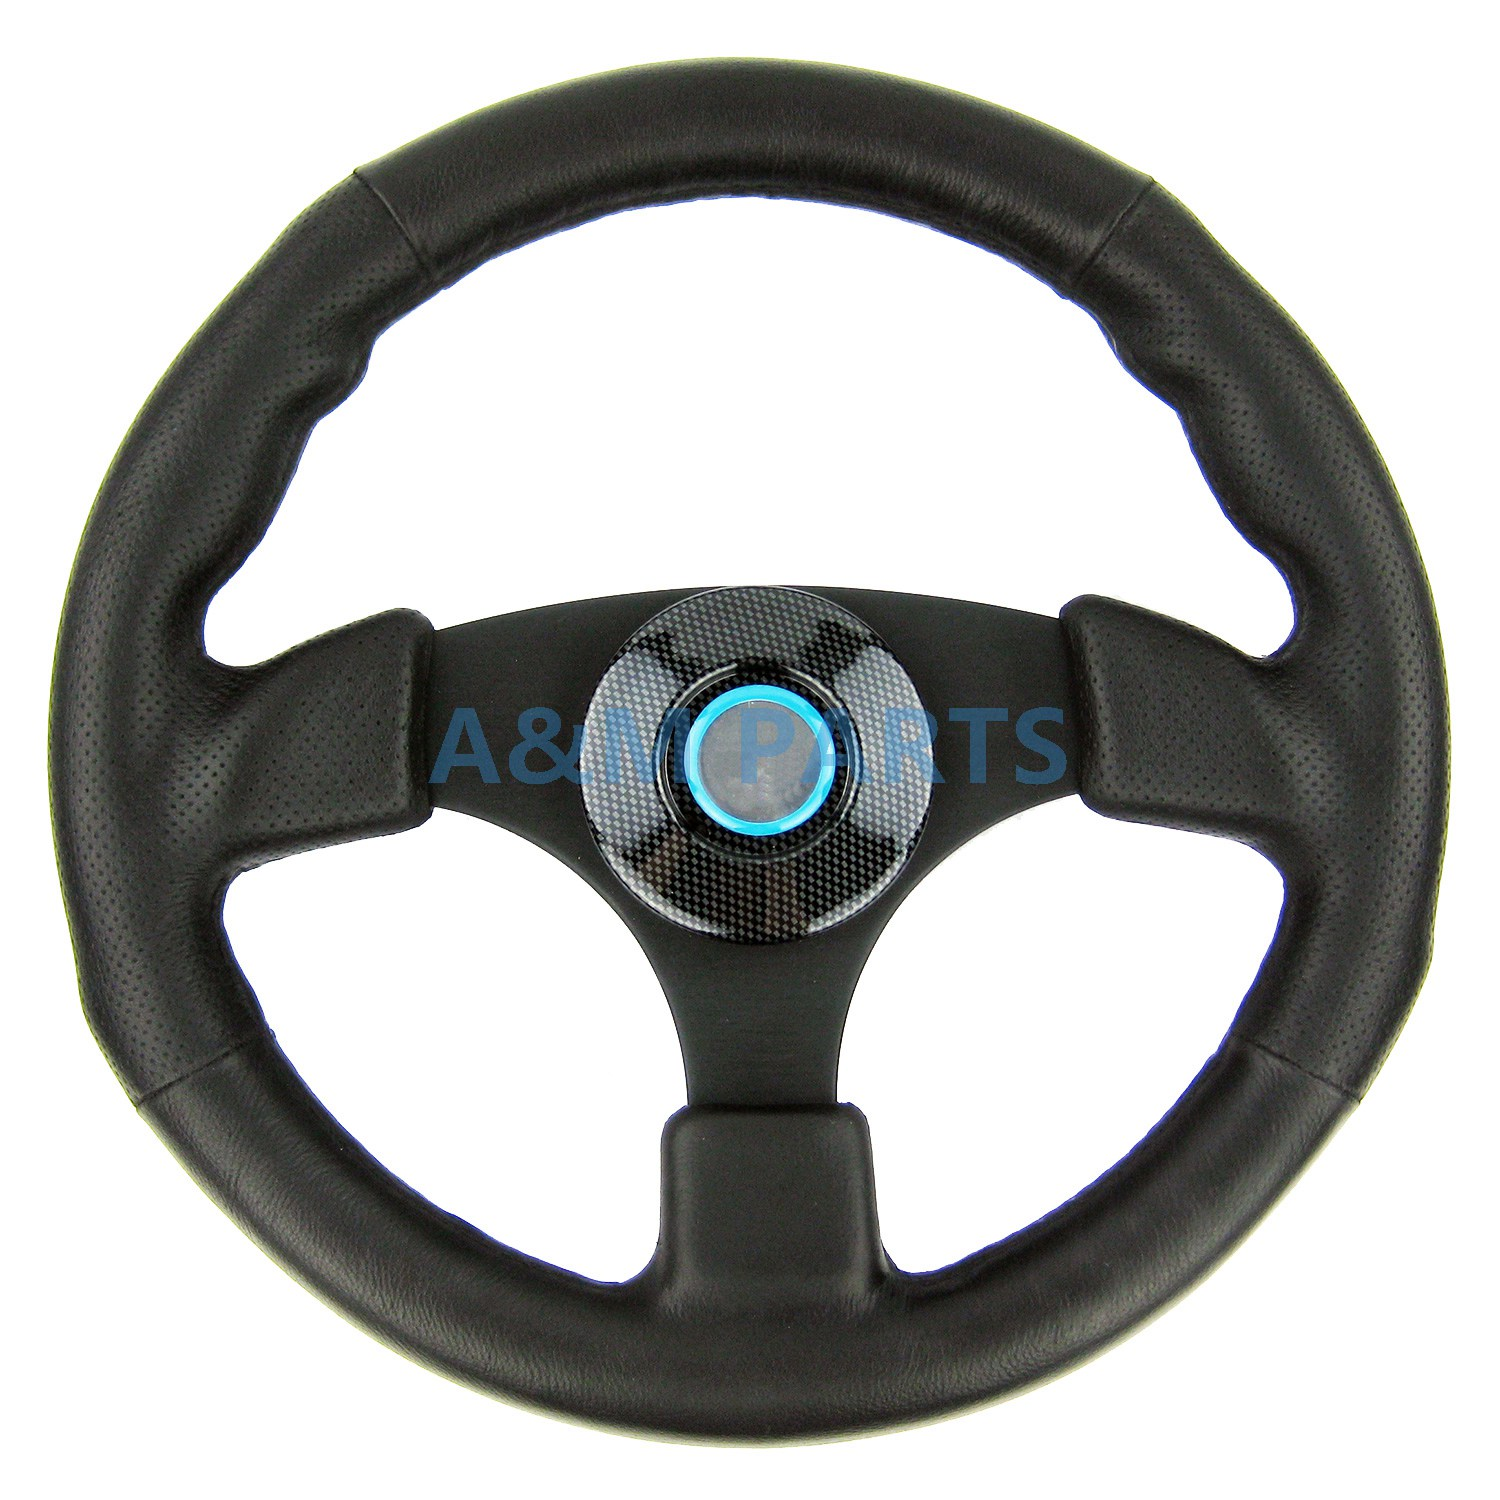 купить Sport Marine Steering Wheel Polyurethane Leather Grip Alloy Aluminum Spoke Boat Steering 13-1/2 по цене 4720.39 рублей